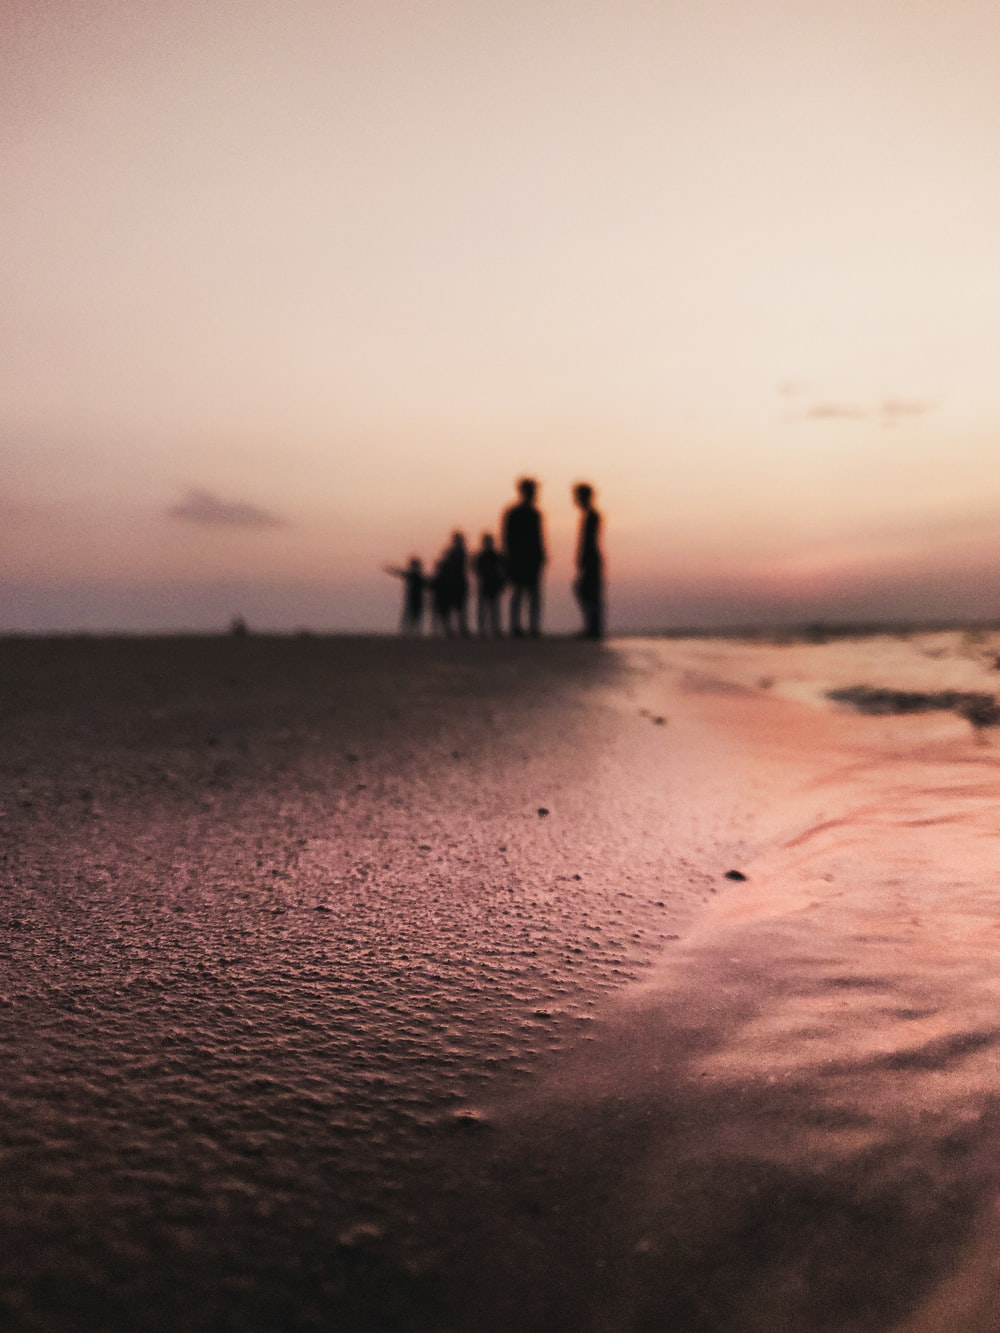 silhouette of people standing on shore